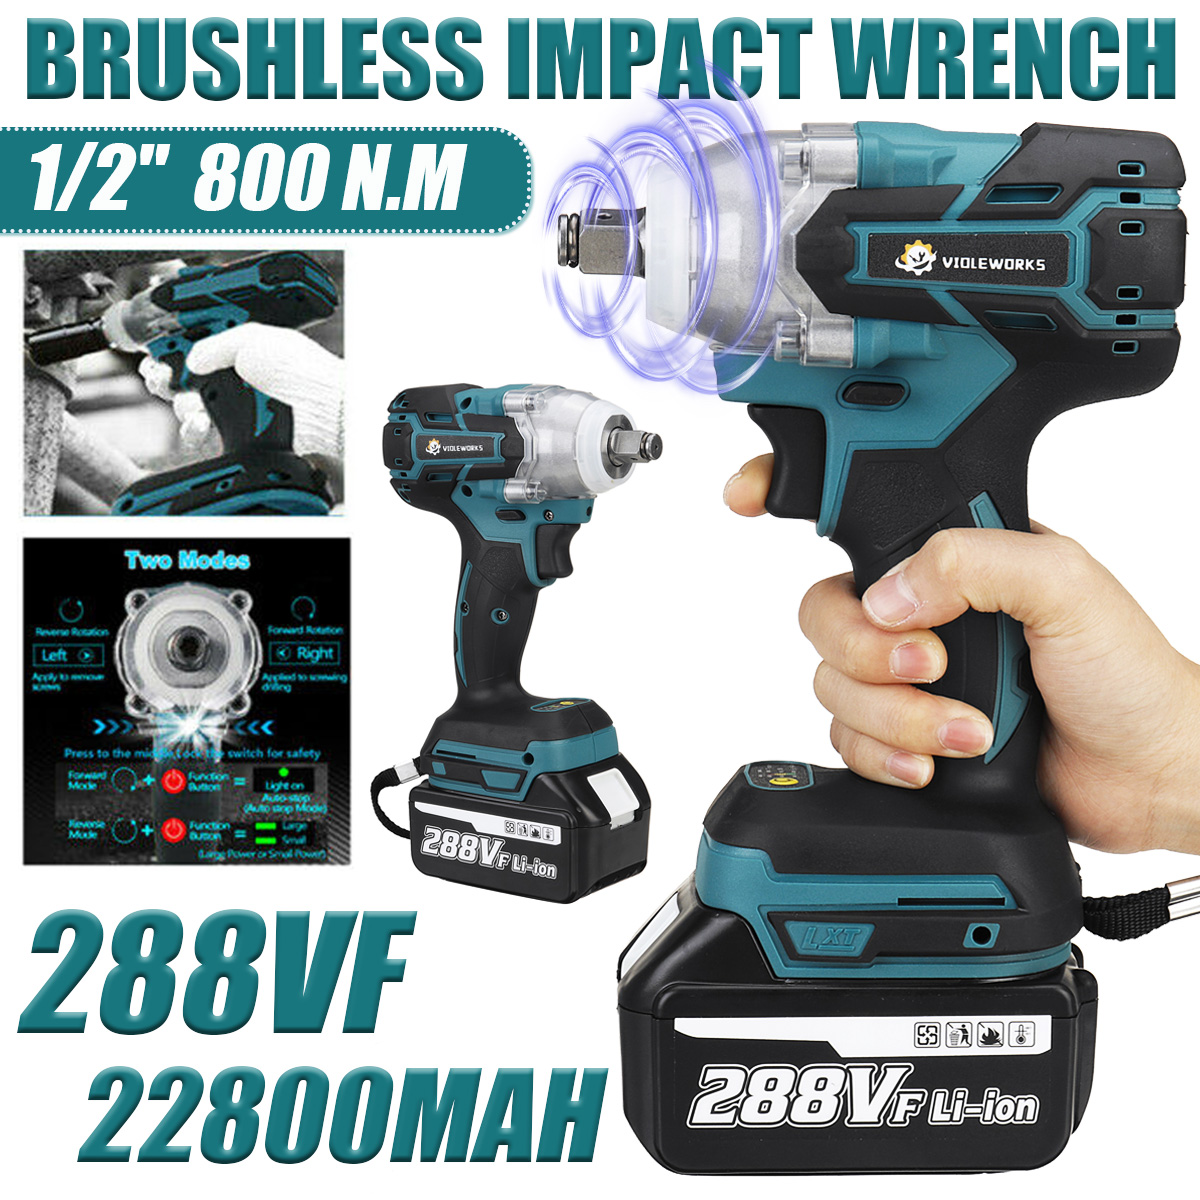 288V 800N.M 22800mAh Electric Wrench 1/2 inch Square Driver Cordless Brushless Impact Wrench Driver Spanner with 1/2 Battery